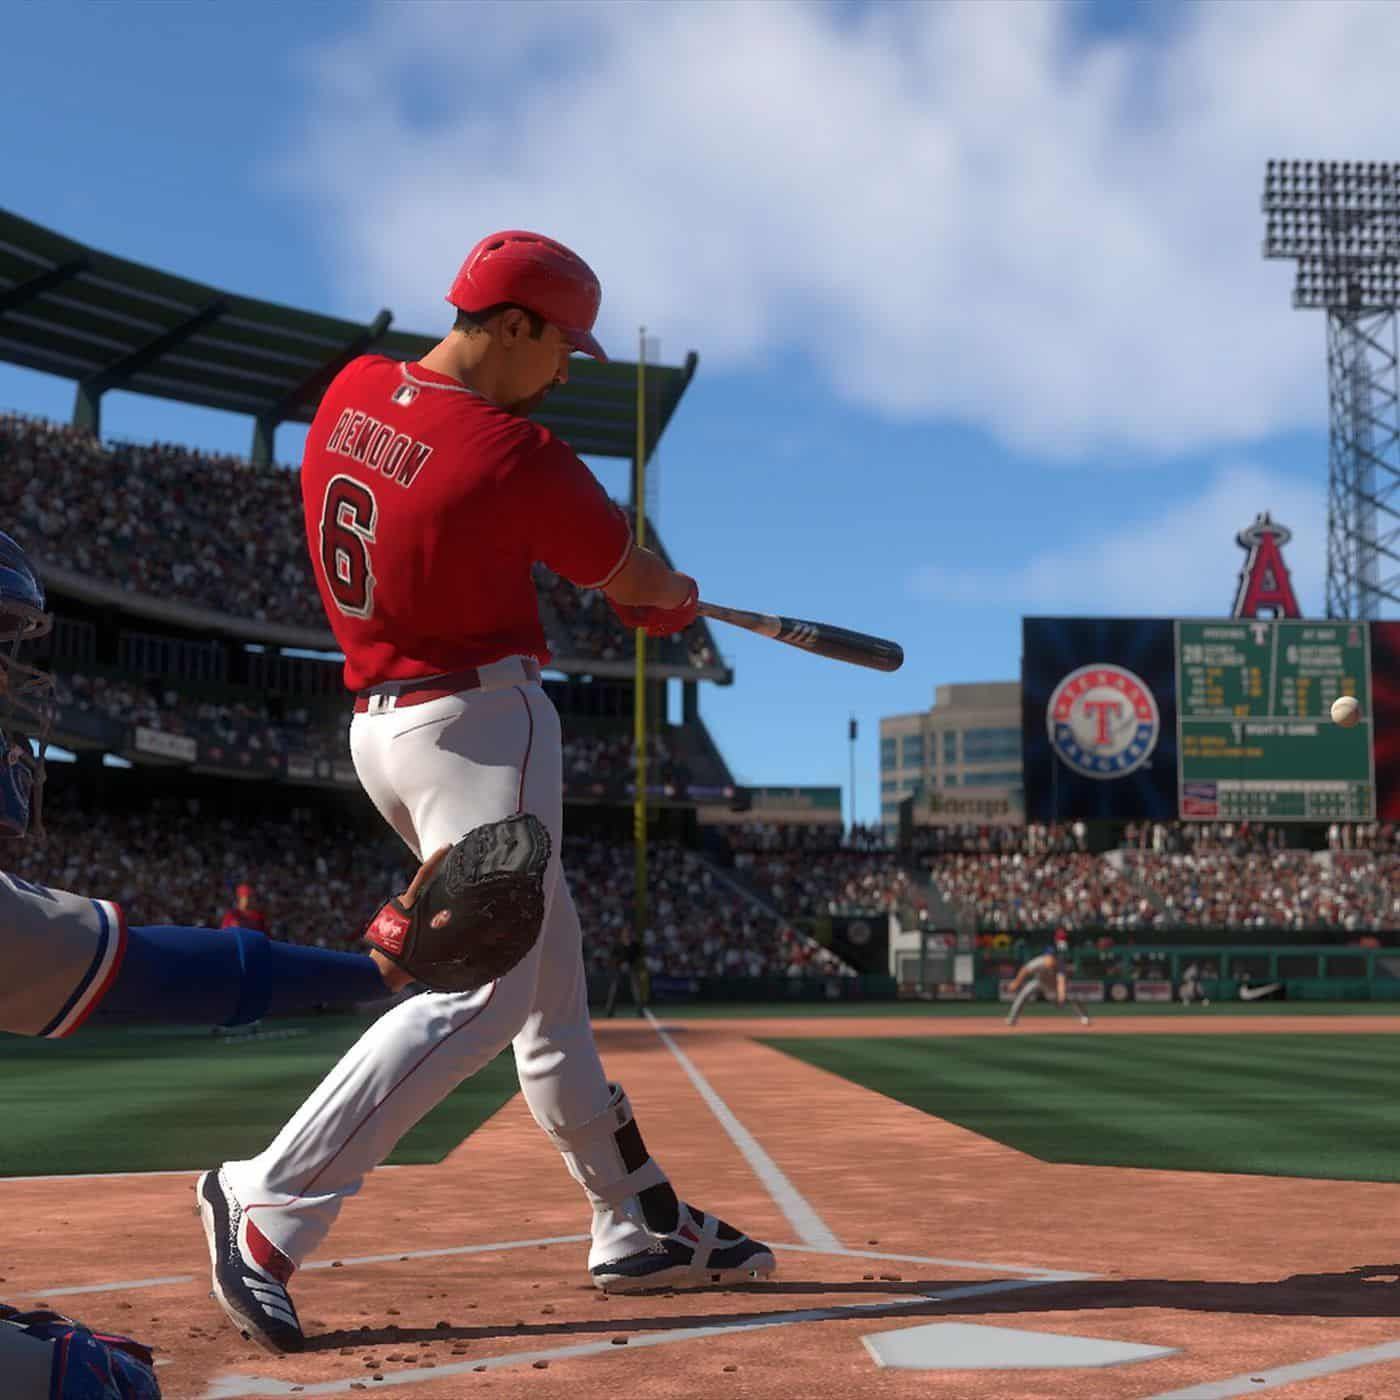 Mlb The Show 20 Features Hundreds Of New Animations And More Sports Gamers Online In 2020 Mlb The Show Mlb Sports